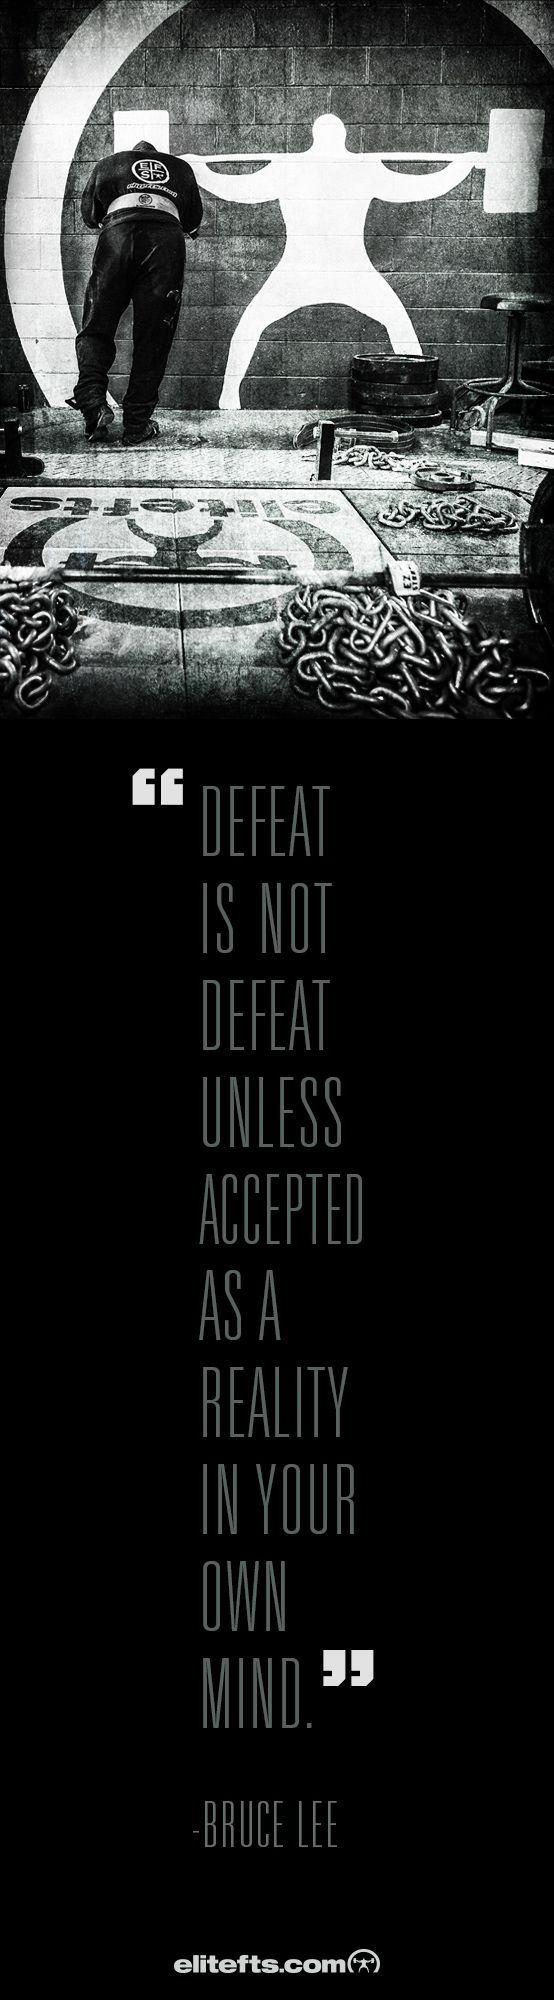 """Defeat is not defeat unless accepted as a reality in your own mind"" - Bruce Lee"